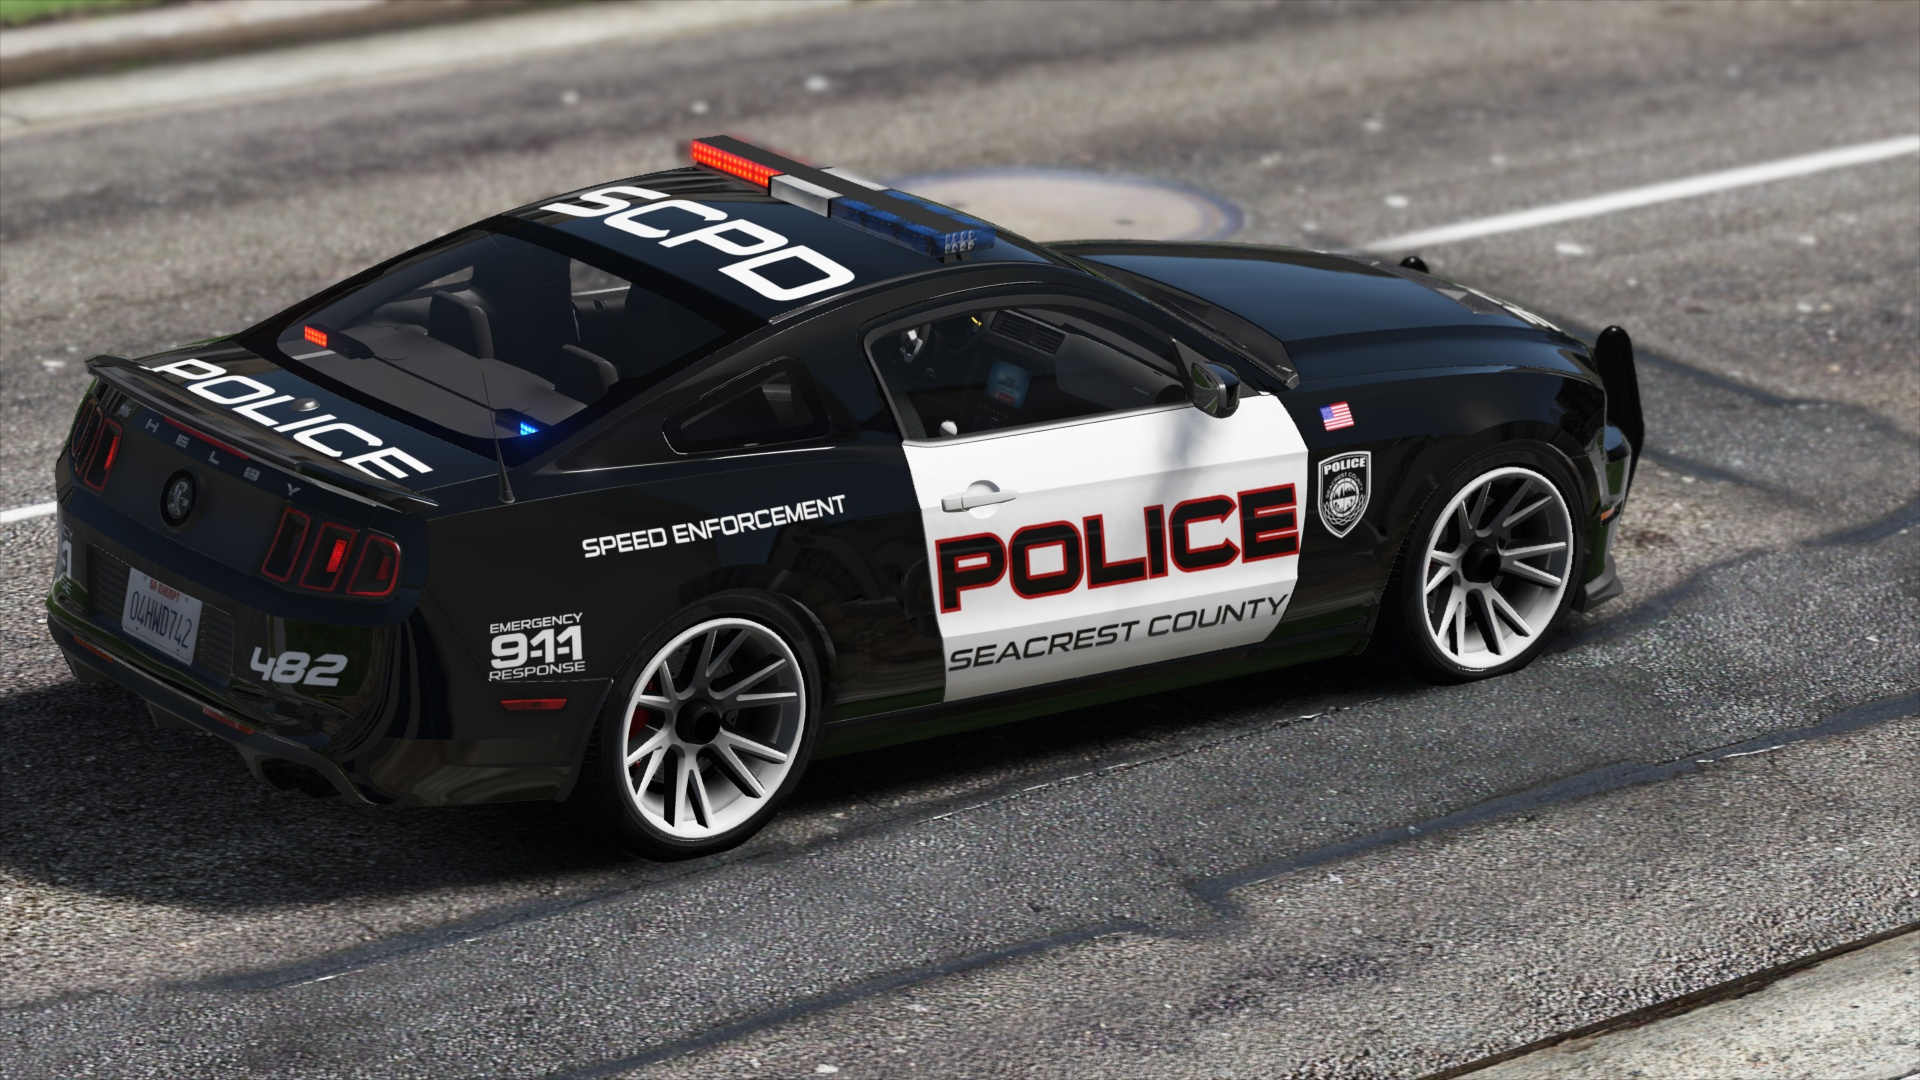 Ford Shelby Gt500 Hot Pursuit Police Add On Replace